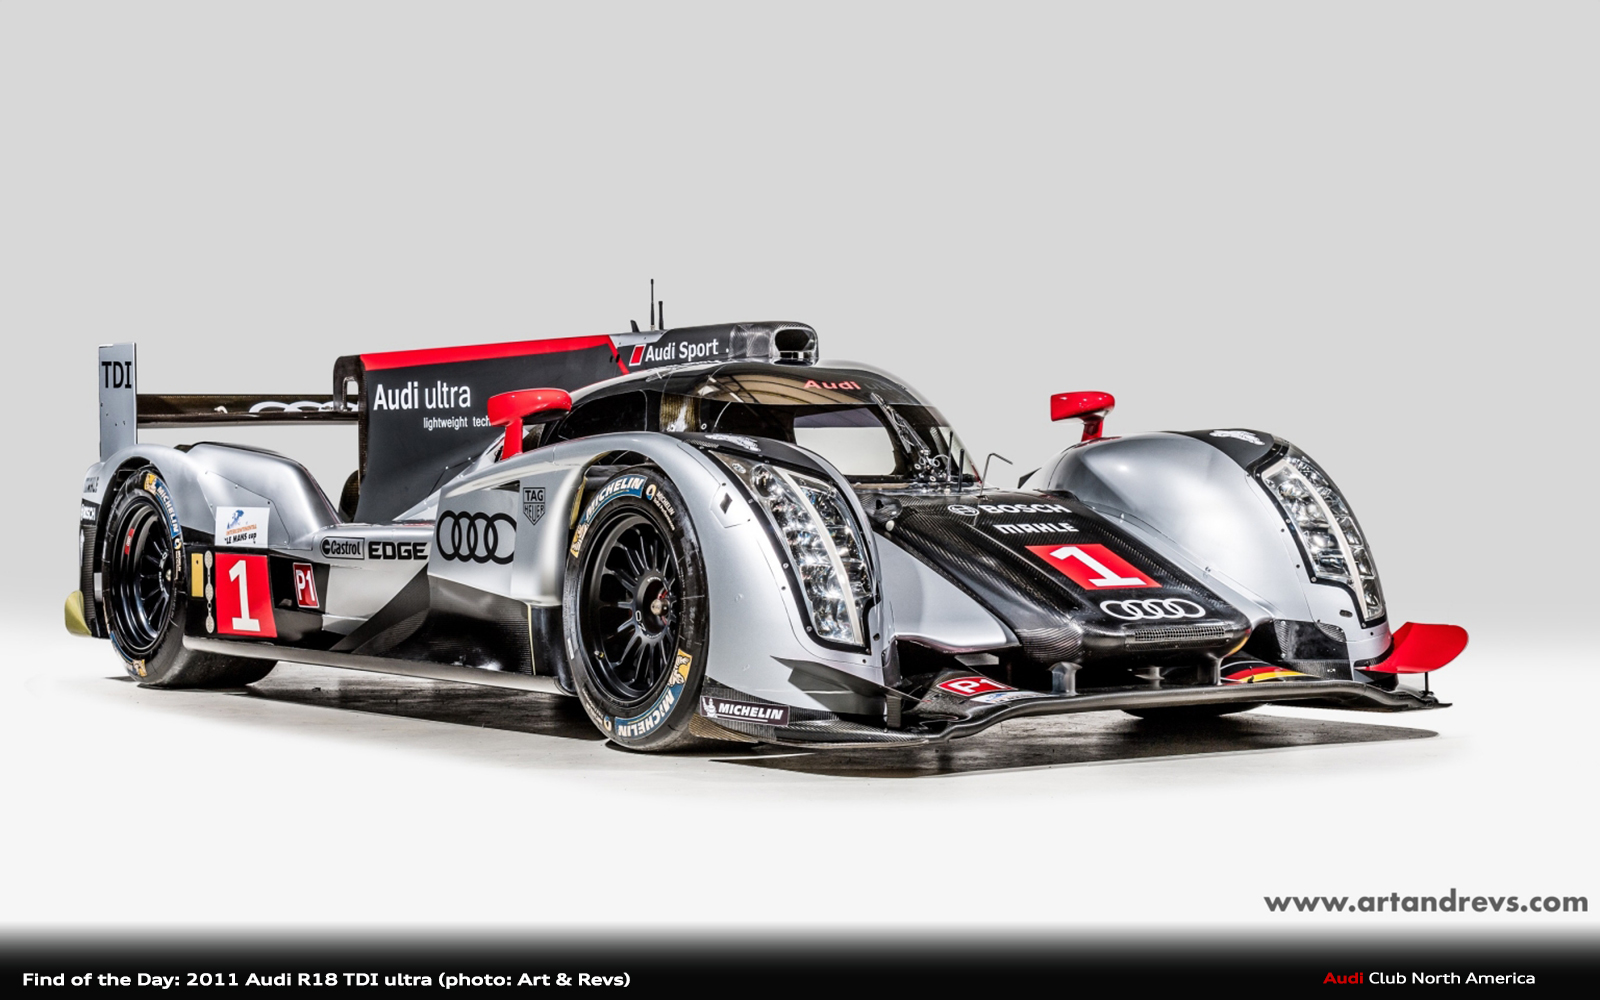 Find of the Day: 2011 Audi R18 TDI ultra